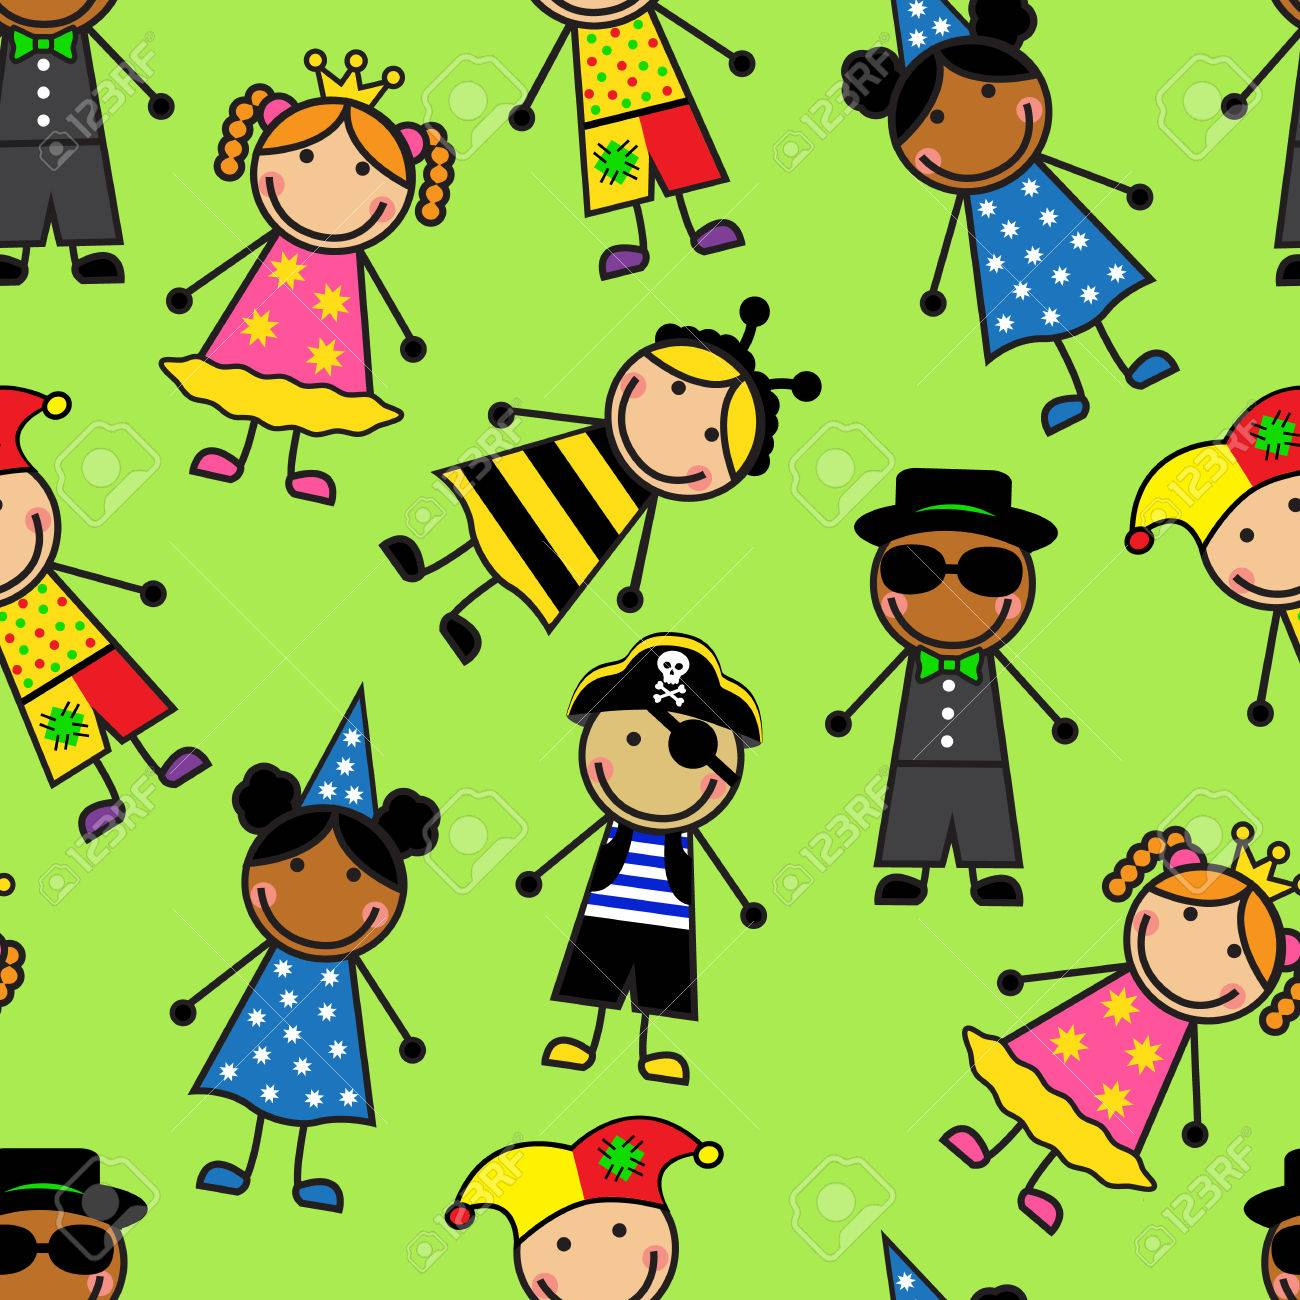 Cartoon seamless pattern with children in different carnival costumes Stock Vector - 27907468  sc 1 st  123RF.com & Cartoon Seamless Pattern With Children In Different Carnival ...